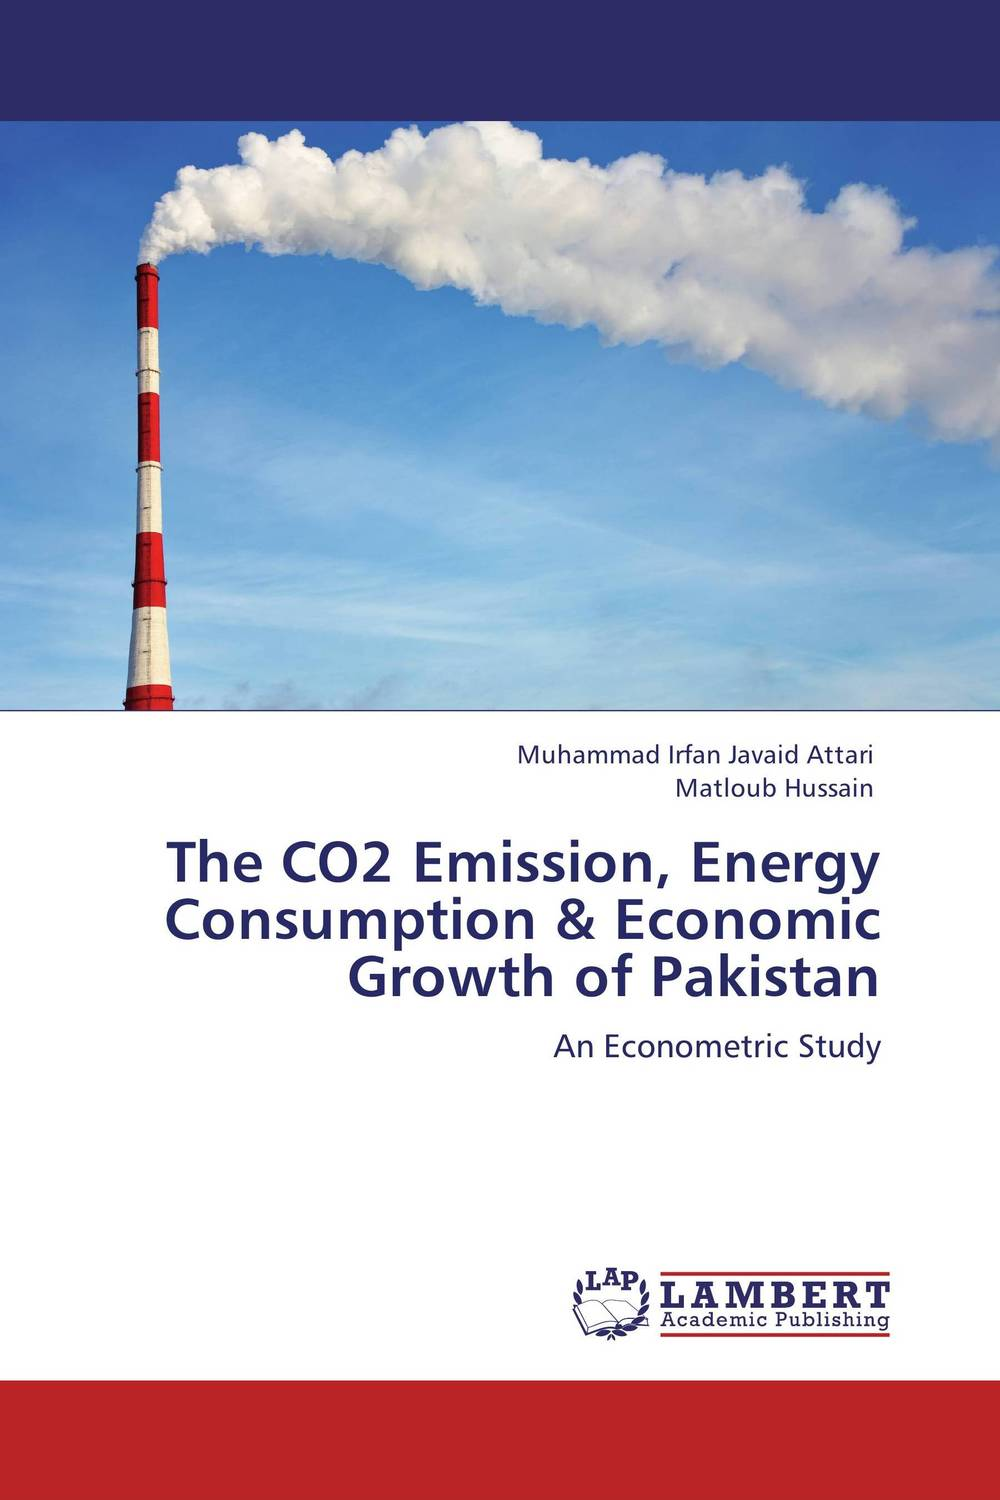 The CO2 Emission, Energy Consumption & Economic Growth of Pakistan t omay energy consumption and economic growth evidence from nonlinear panel cointegration and causality tests